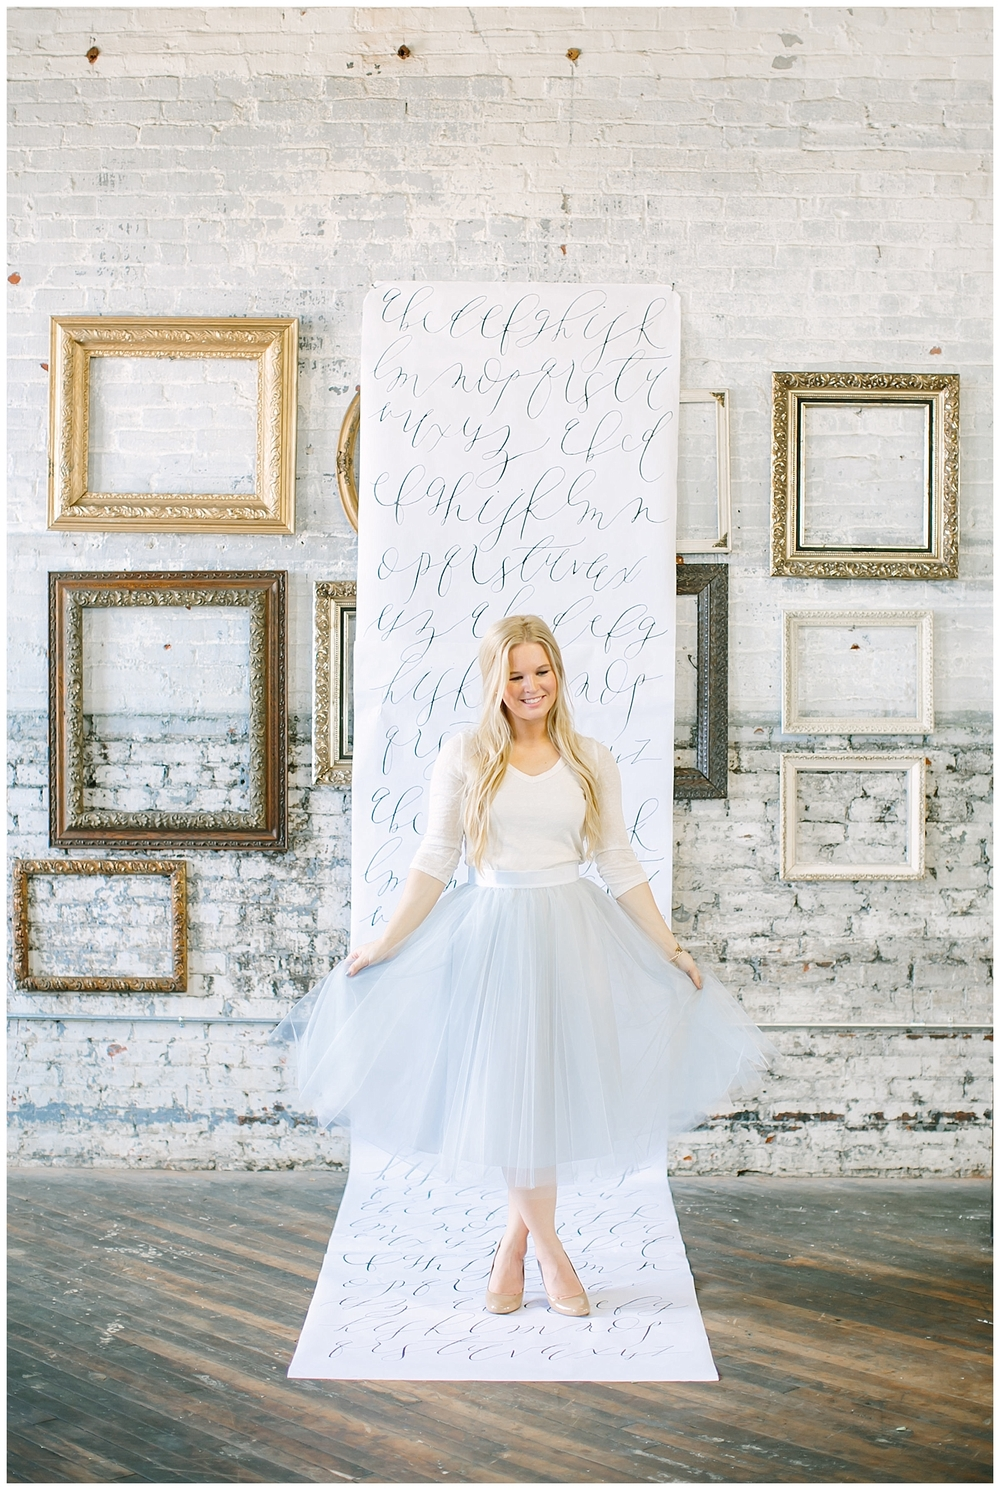 Red Oak Weddings | Wedding + Lifestyle Blog for the Modern Couple in NY, NJ + PA | Local Events | Parris Chic Boutique